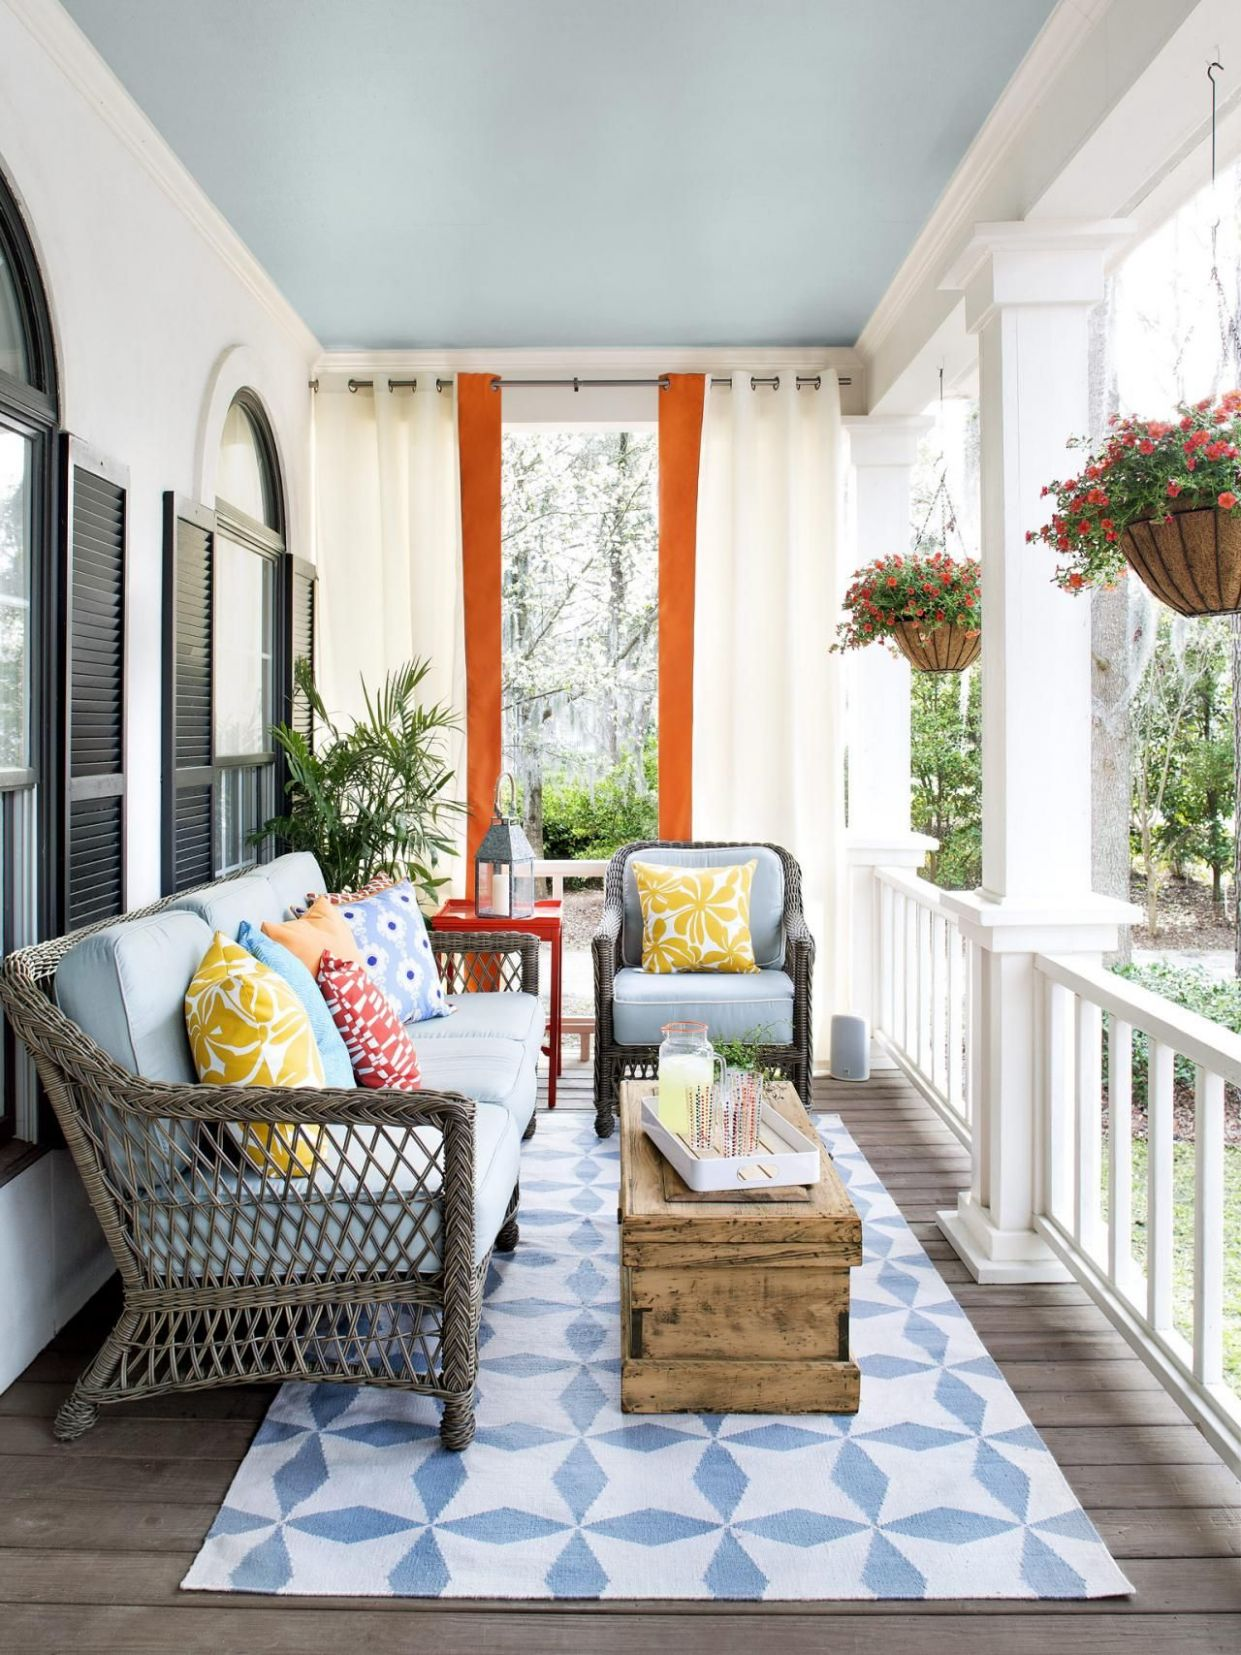 Porch Design and Decorating Ideas (With images) | Porch design, Home - front porch decor ideas